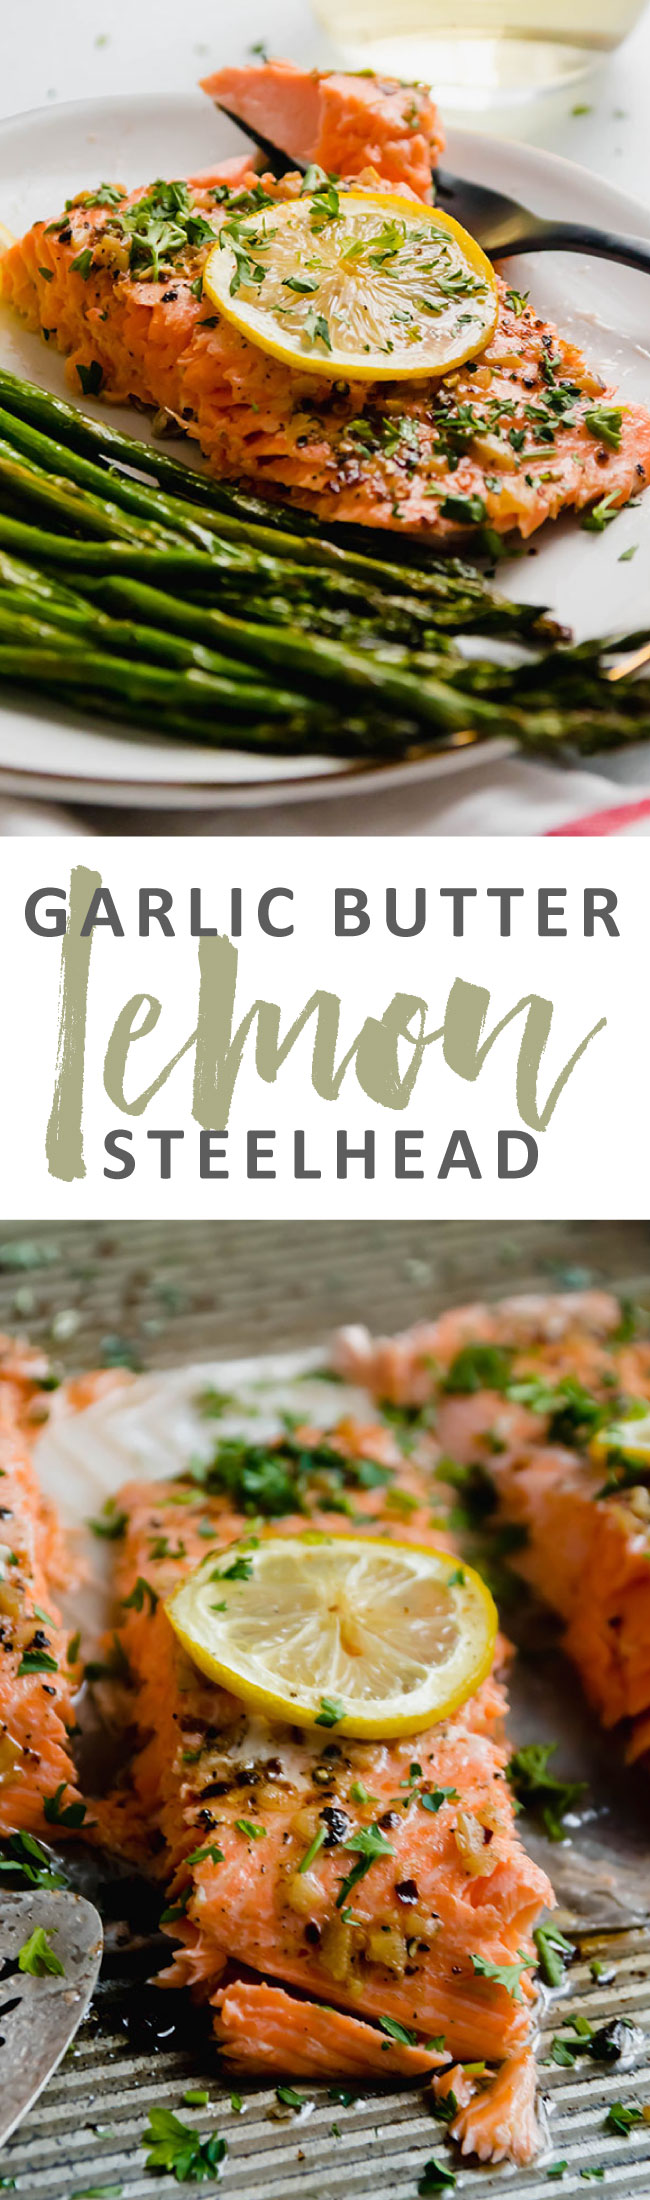 """graphic with two images of baked steelhead and text that reads """"garlic butter lemon steelhead"""""""